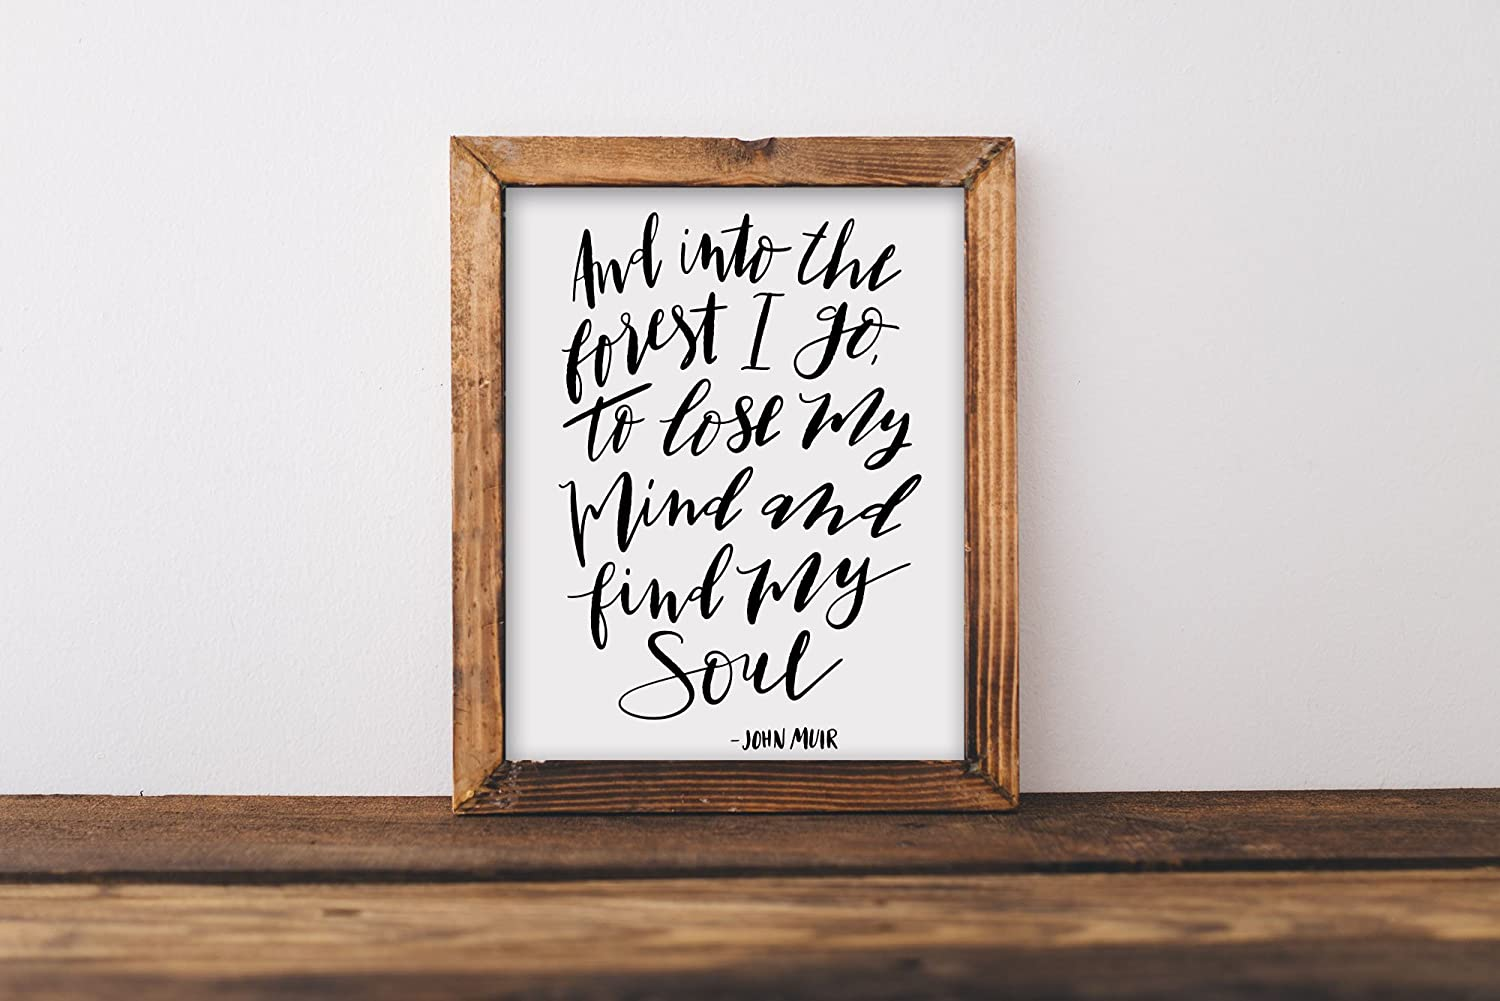 Art print, into the forest I go to lose my mind and find my soul, John Muir quote, hand lettered, woods, adventure, wanderlust, lettering, 8x10